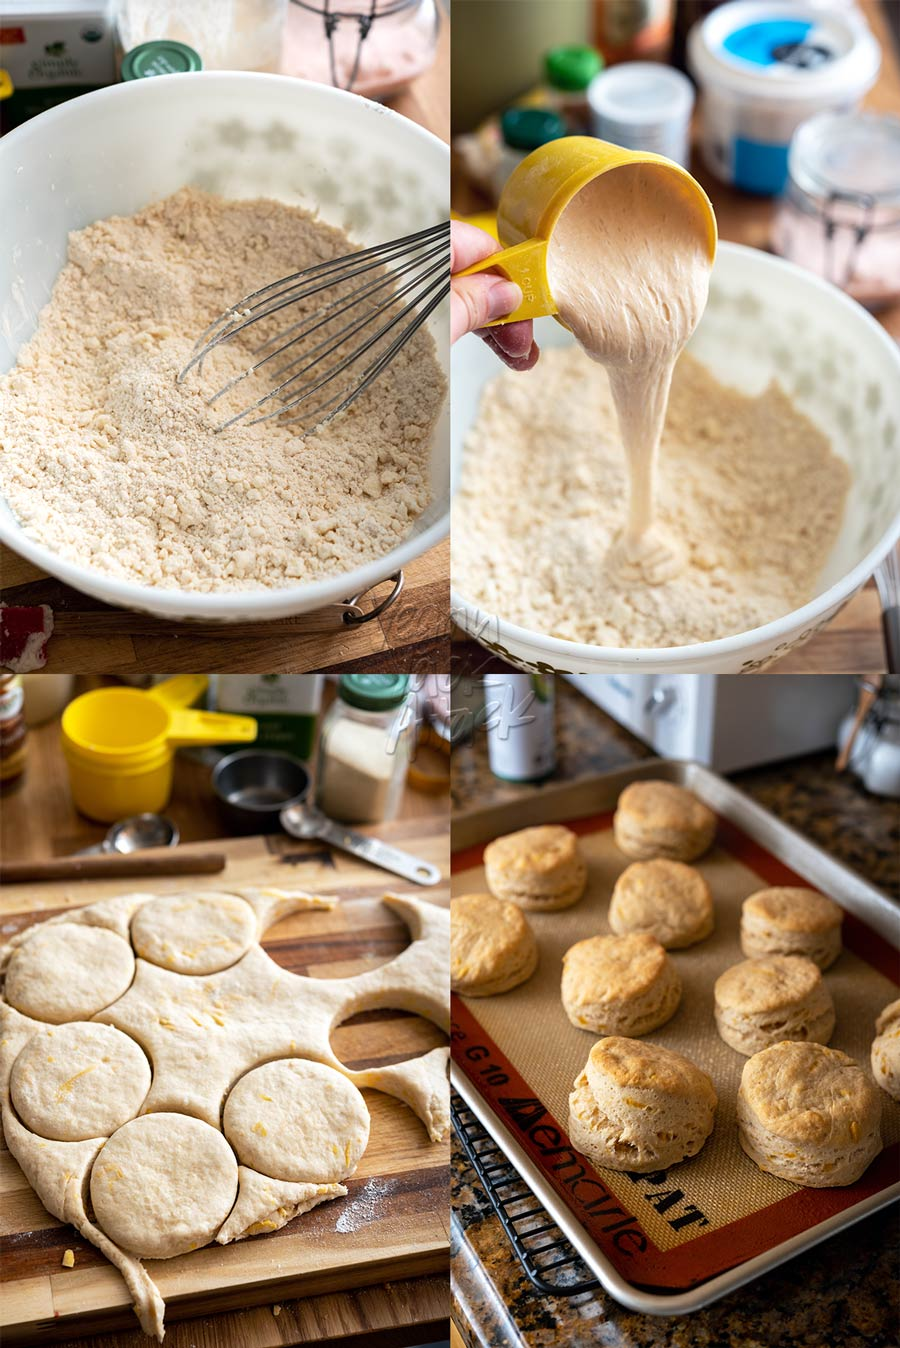 Making vegan sourdough biscuits